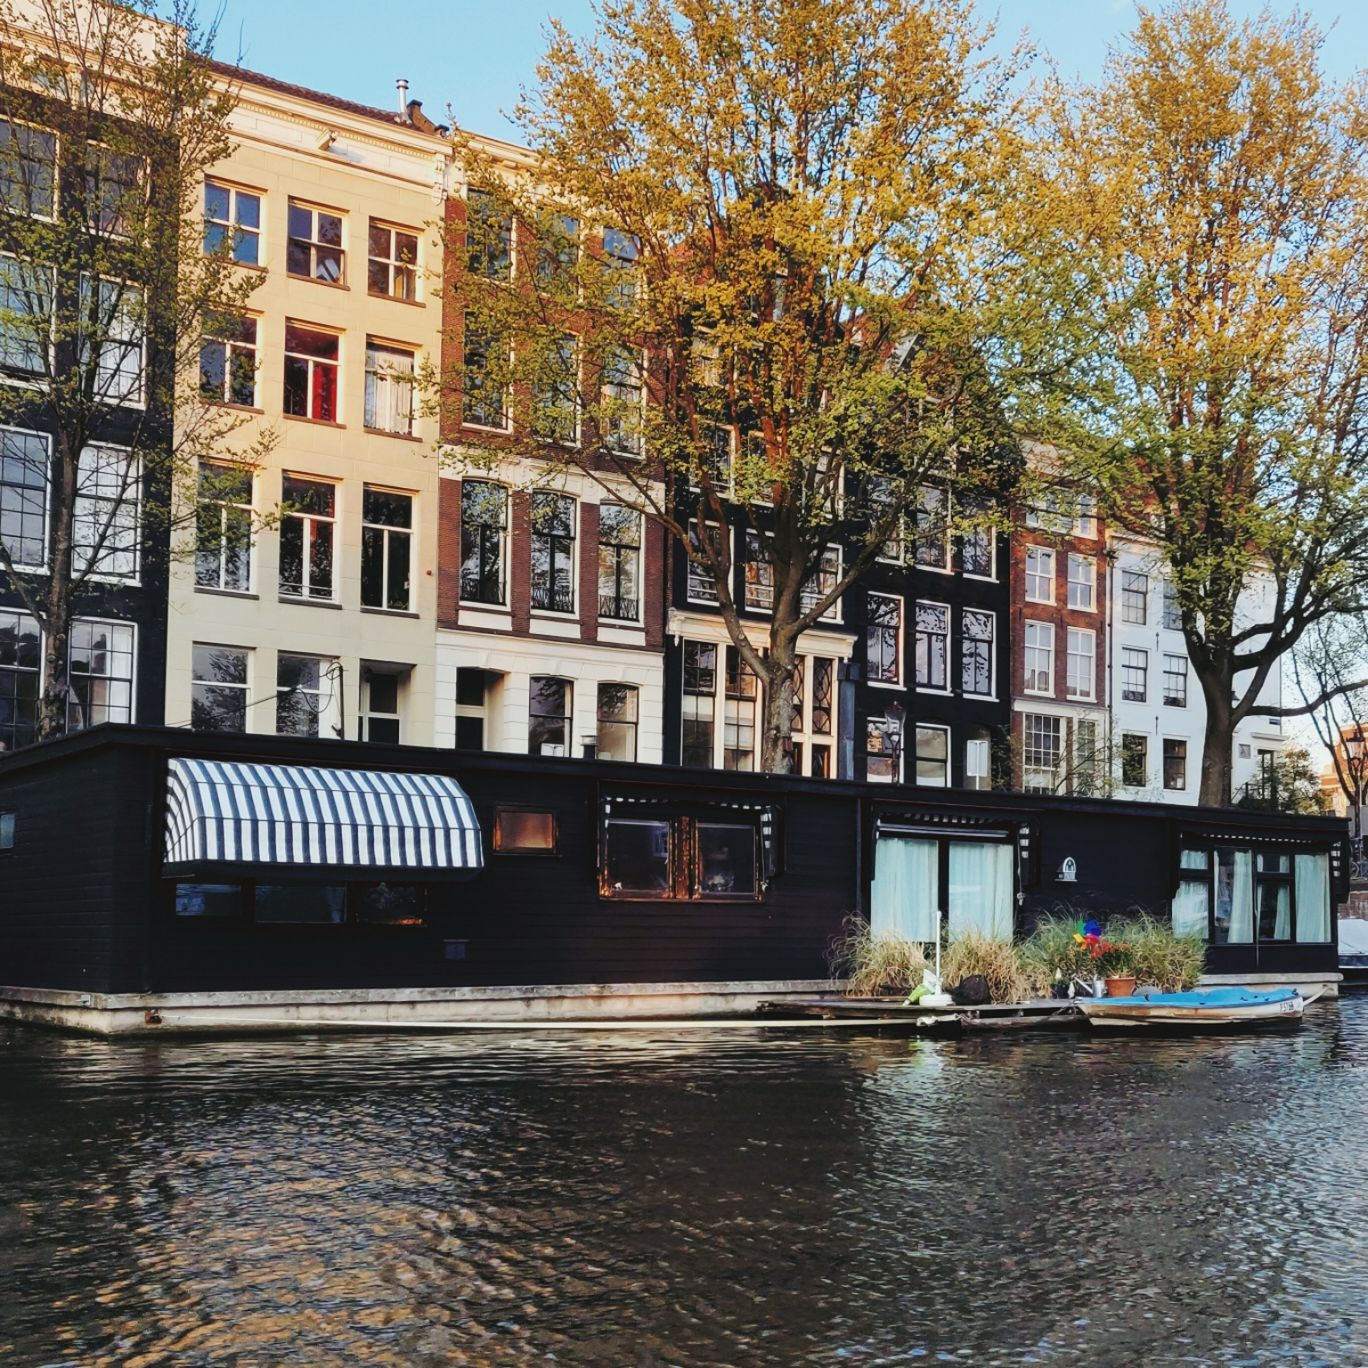 Photo of Amsterdam By Abin George